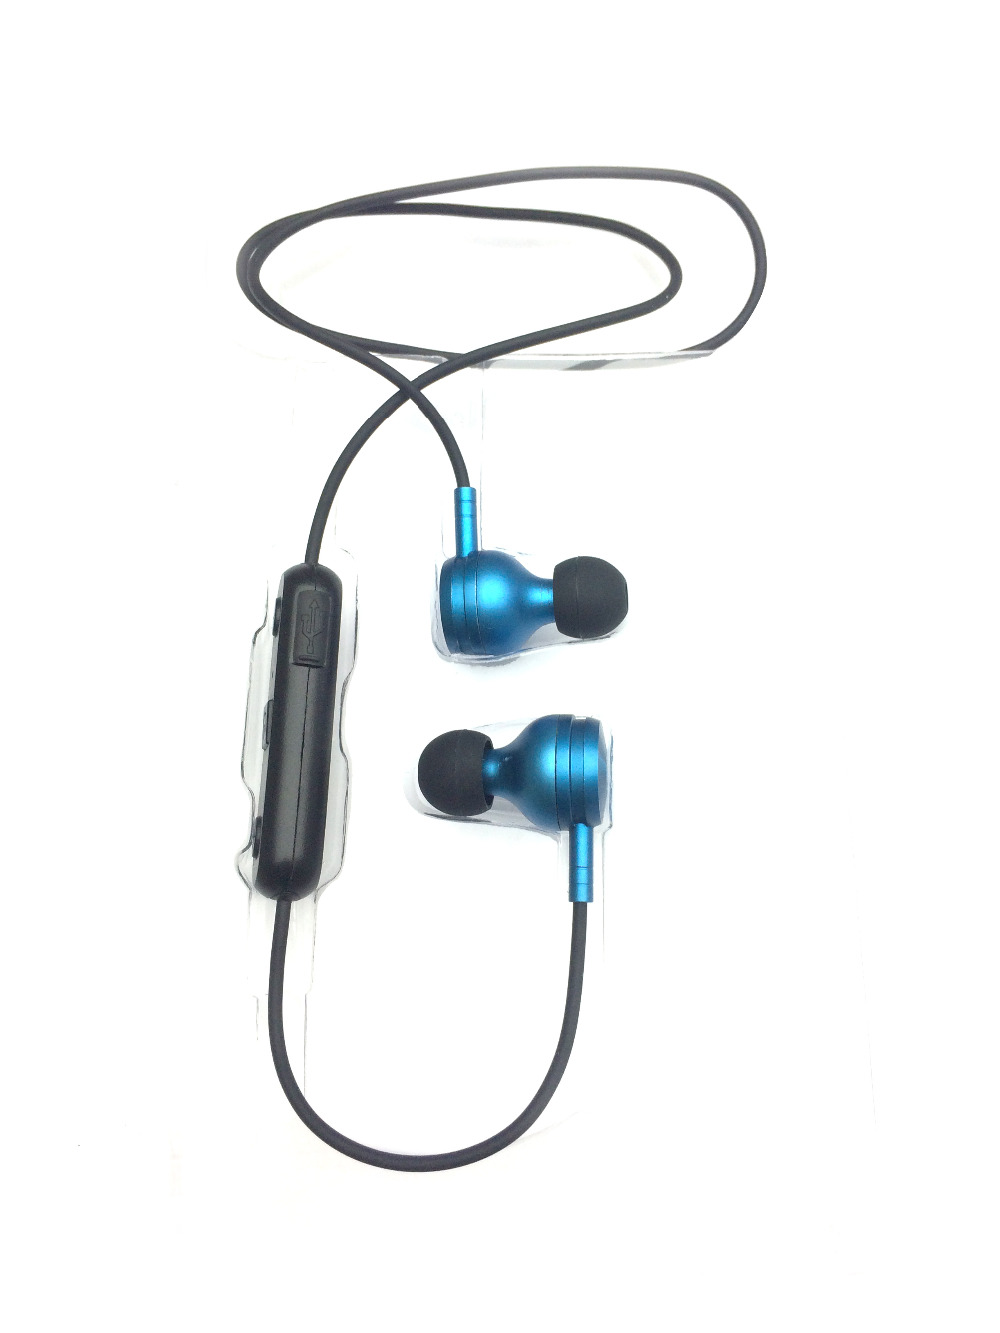 Hutmtech M8 bluetooth earphone sport runnging Noise Cancelling earphones with microphone bluetooth Earpiece For Xiaomi Iphone